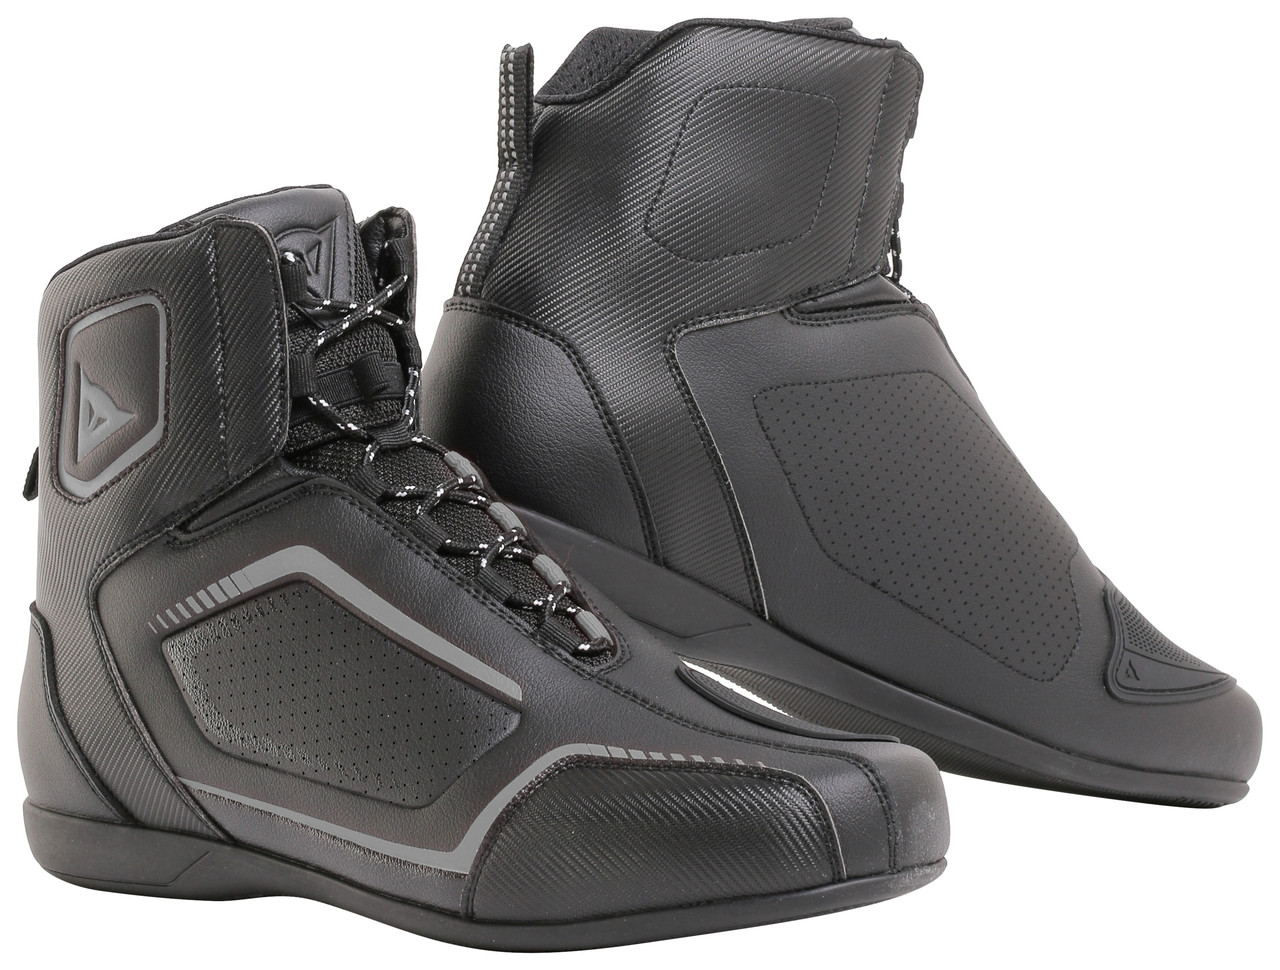 МОТОБОТЫ DAINESE RAPTORS AIR, 39 *